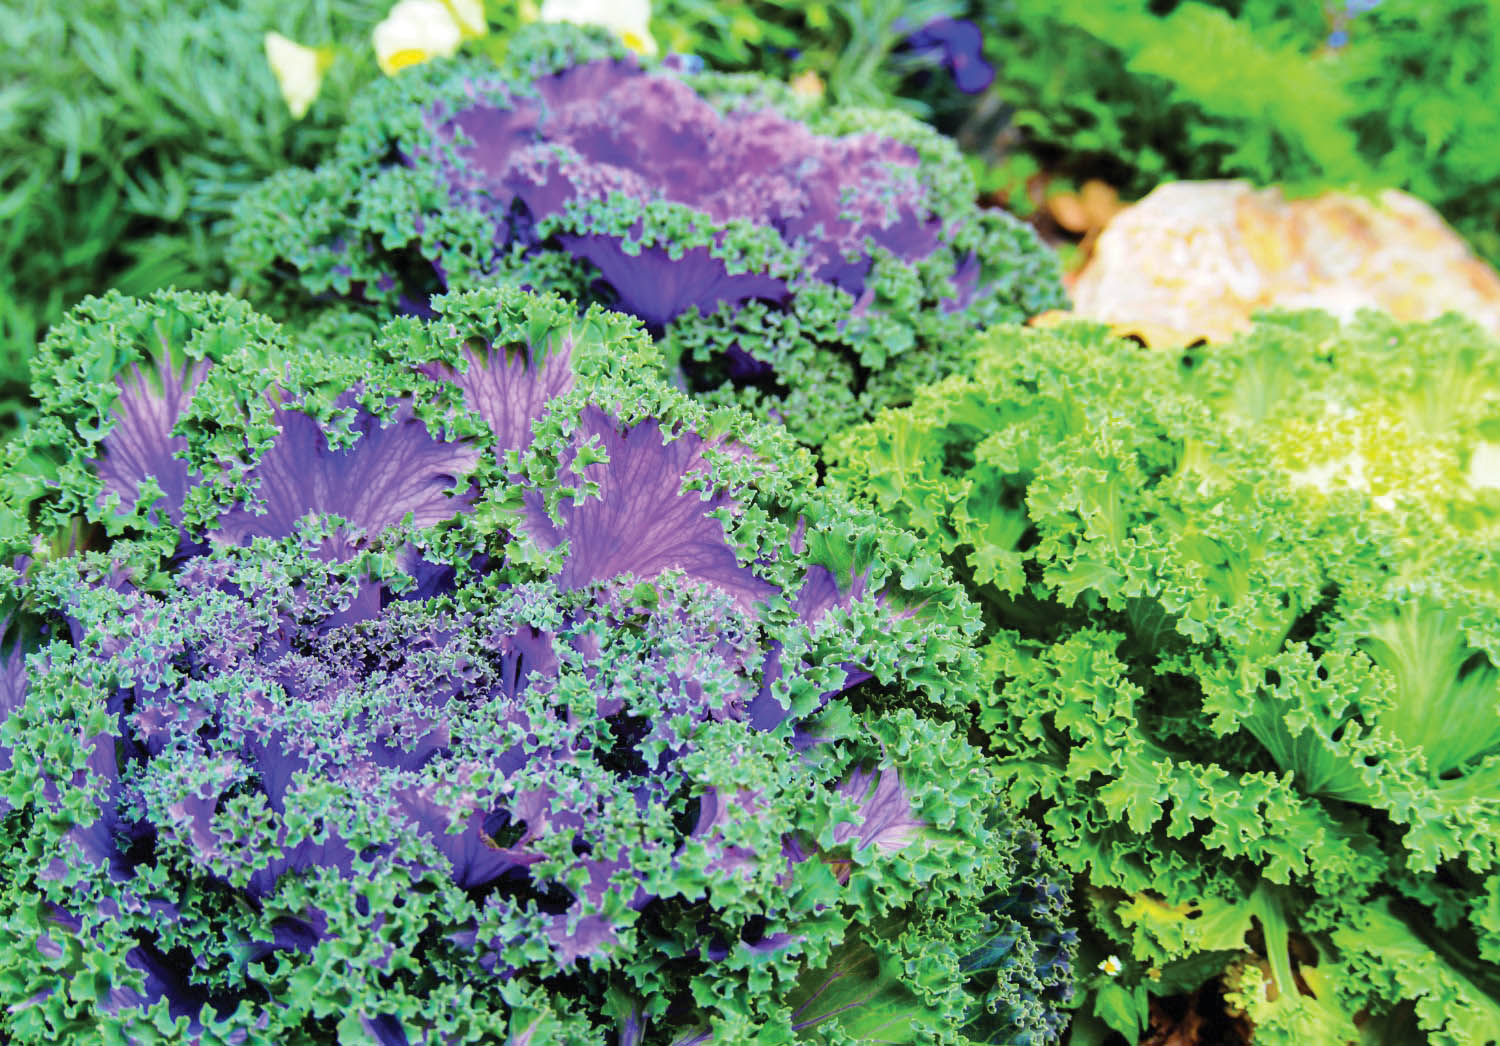 All Hail Kale: Good Organic Gardening - Decorative Kale